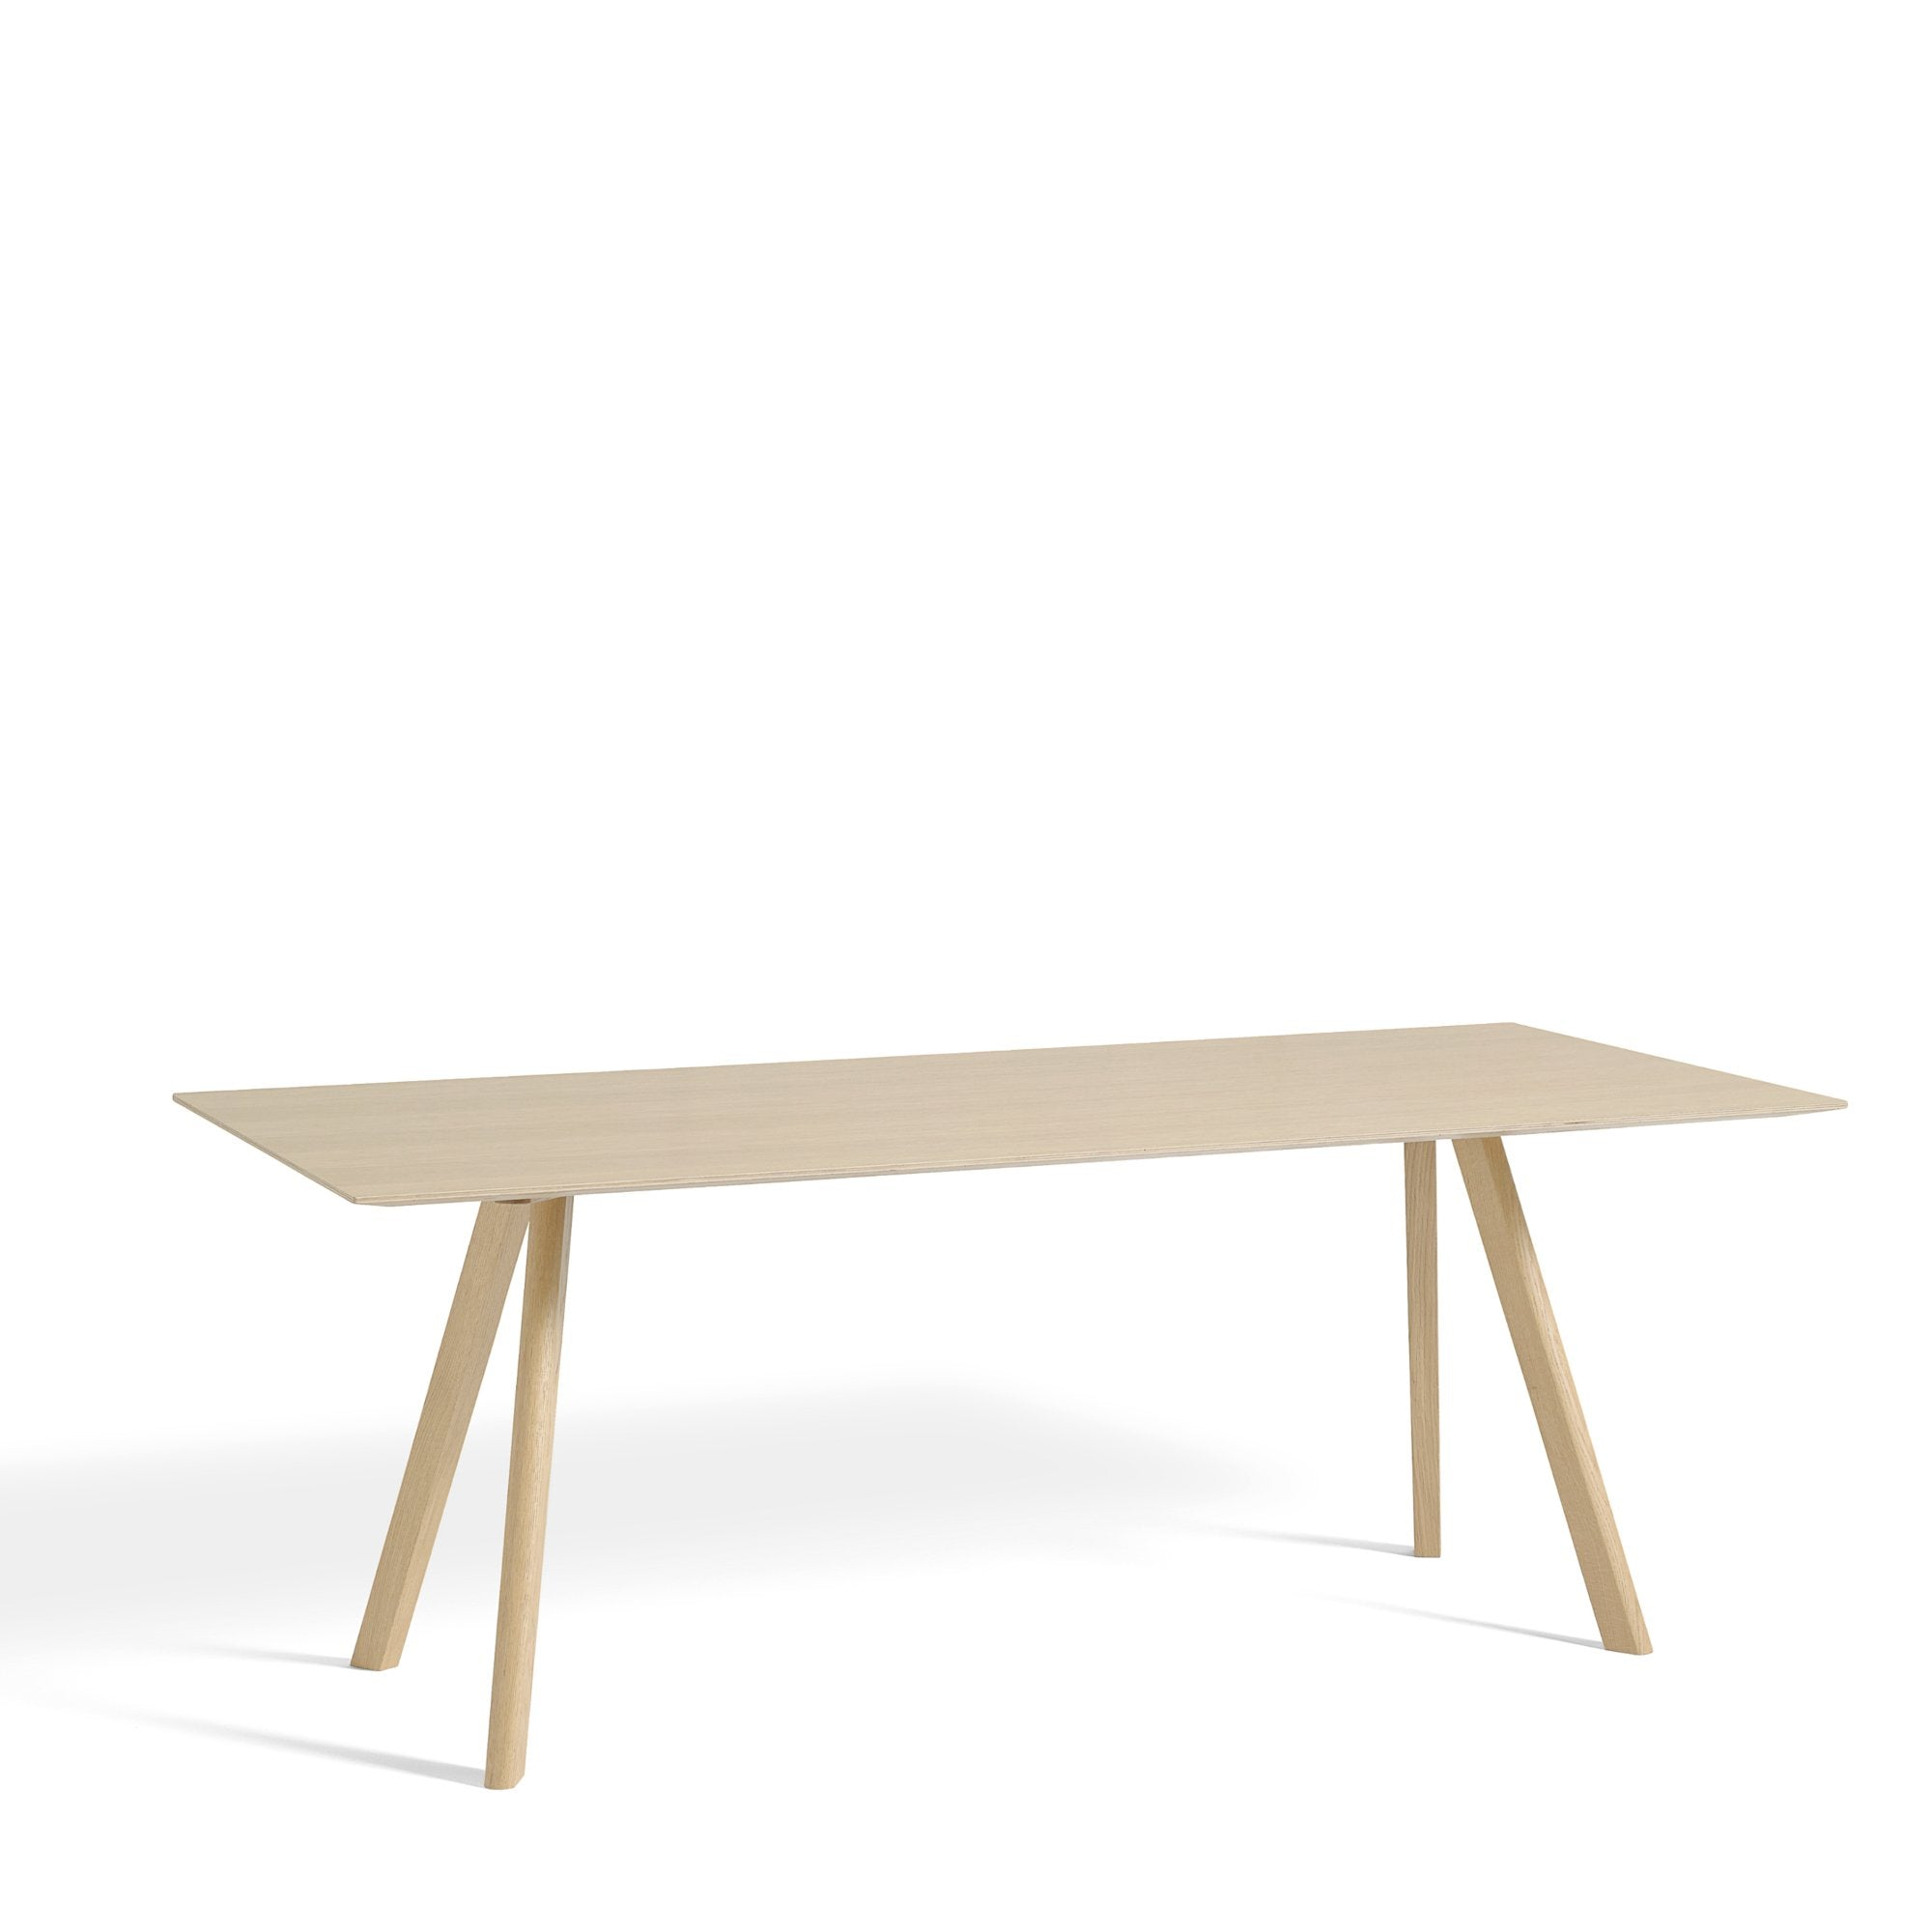 HAY CPH 30 Table 2000mm with Matt Lacquered Oak Base